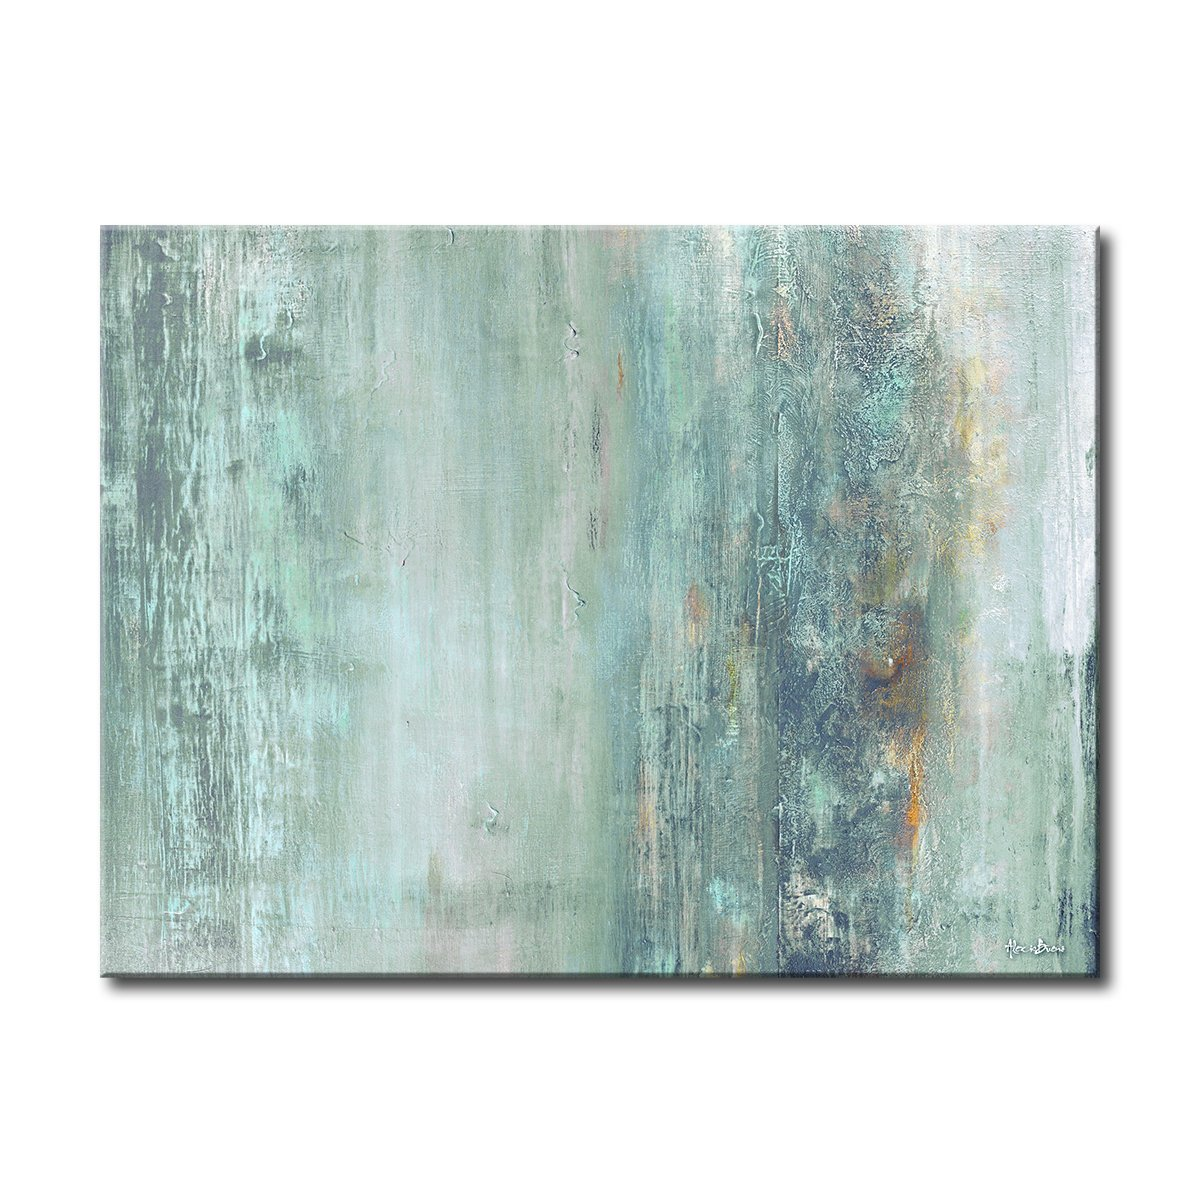 Ready2HangArt 'Abstract Spa' Gallery Wrapped Canvas, 30'' High x 40'' Wide x 1'' to 2'' Deep, Blue/Teal